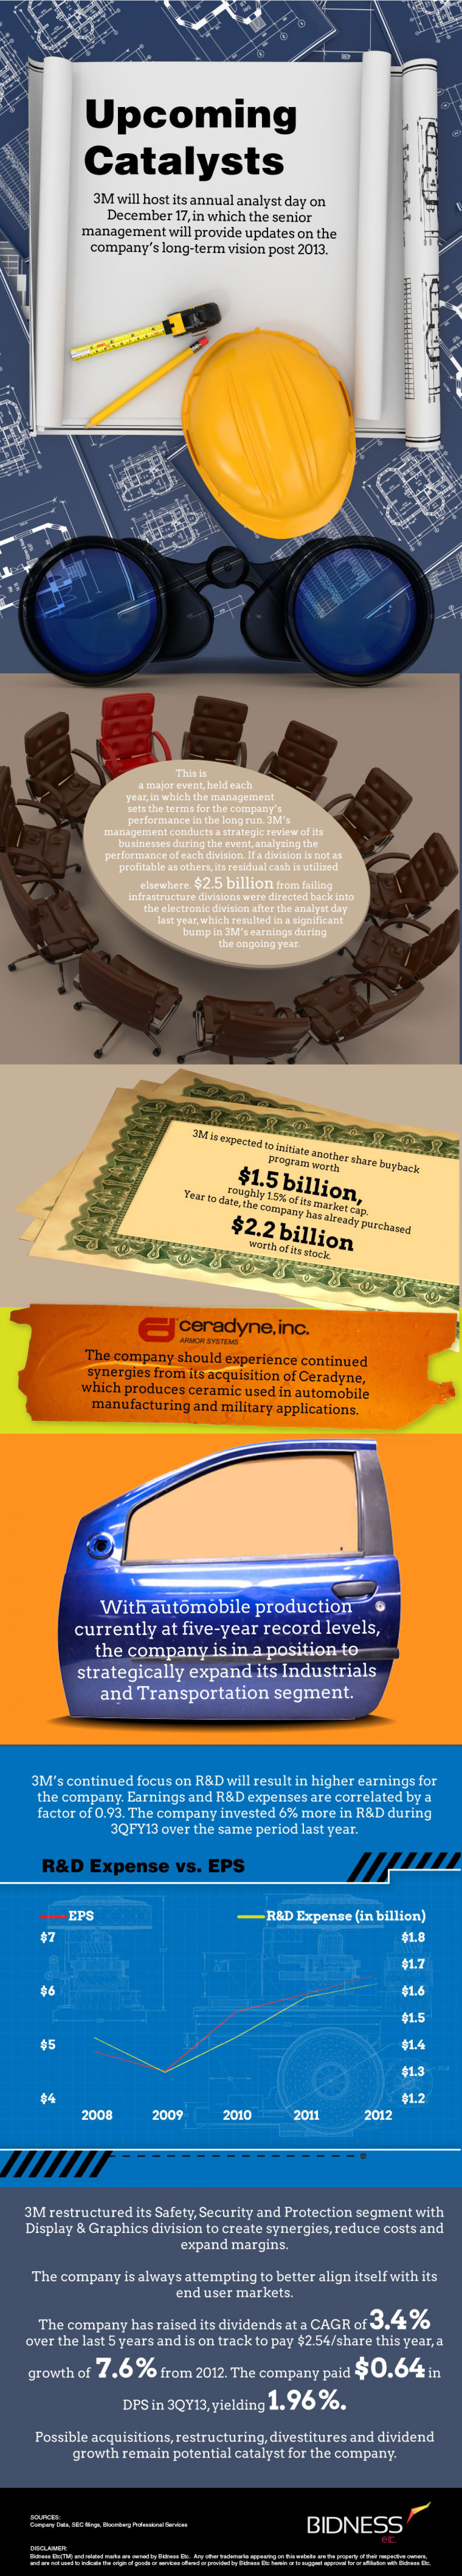 3m Upcoming Catalysts Infographic